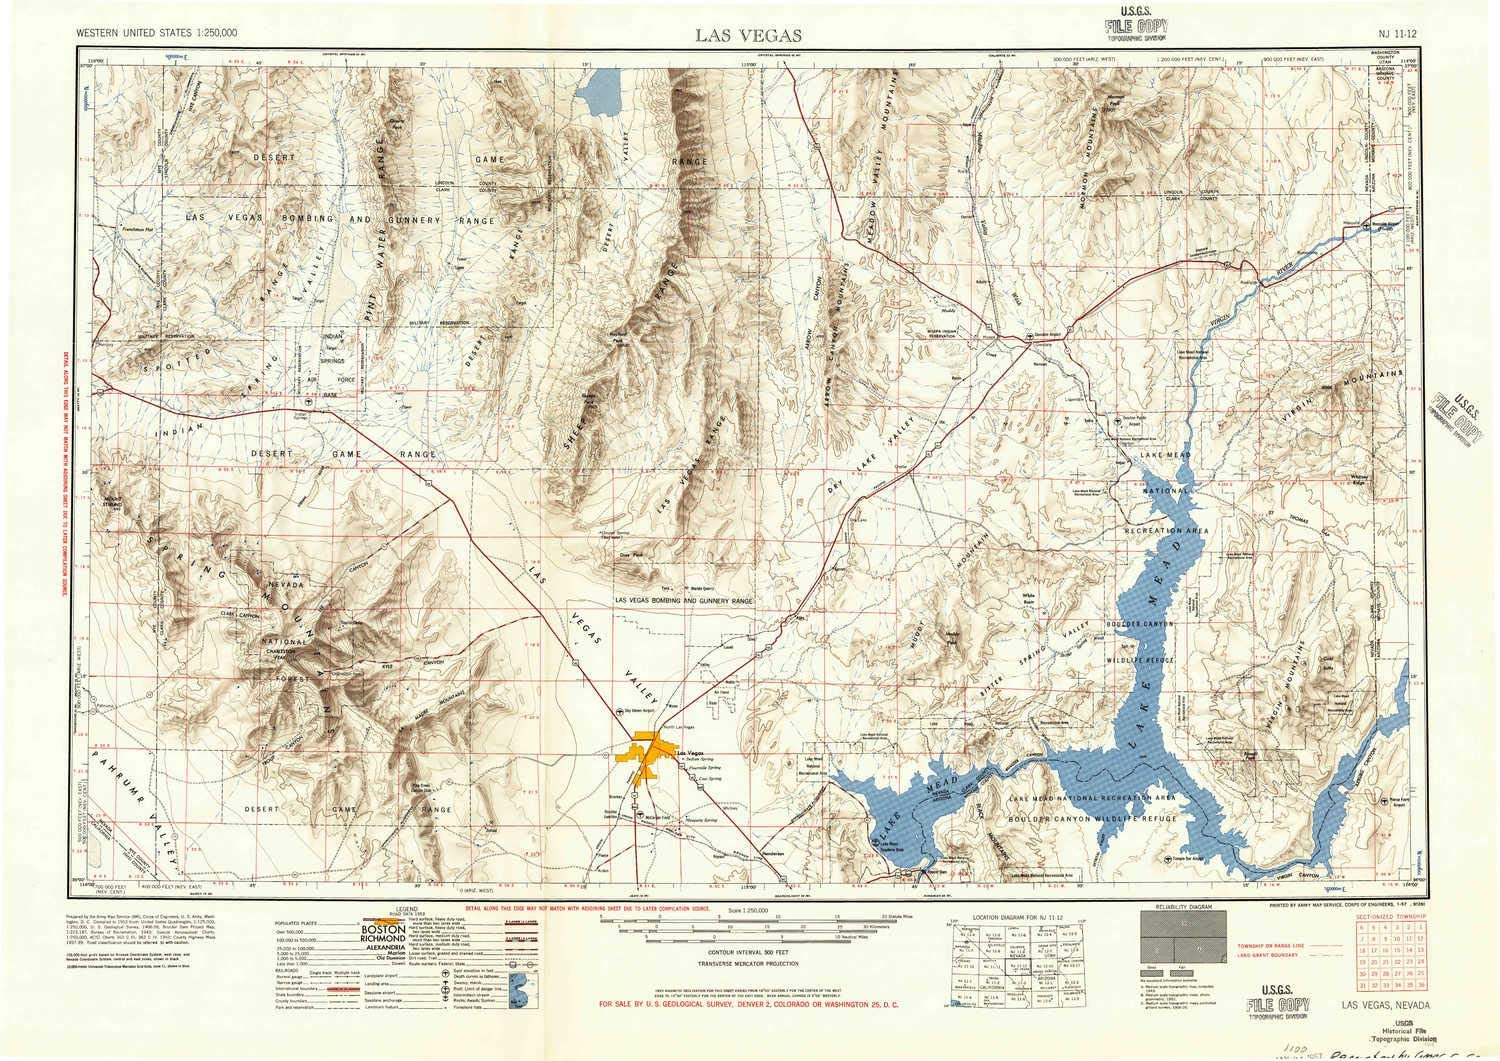 amazon com yellowmaps las vegas nv topo map 1 250000 scale 1 x 2 degree historical 1957 updated 1957 22 8 x 32 2 in paper sports outdoors yellowmaps las vegas nv topo map 1 250000 scale 1 x 2 degree historical 1957 updated 1957 22 8 x 32 2 in